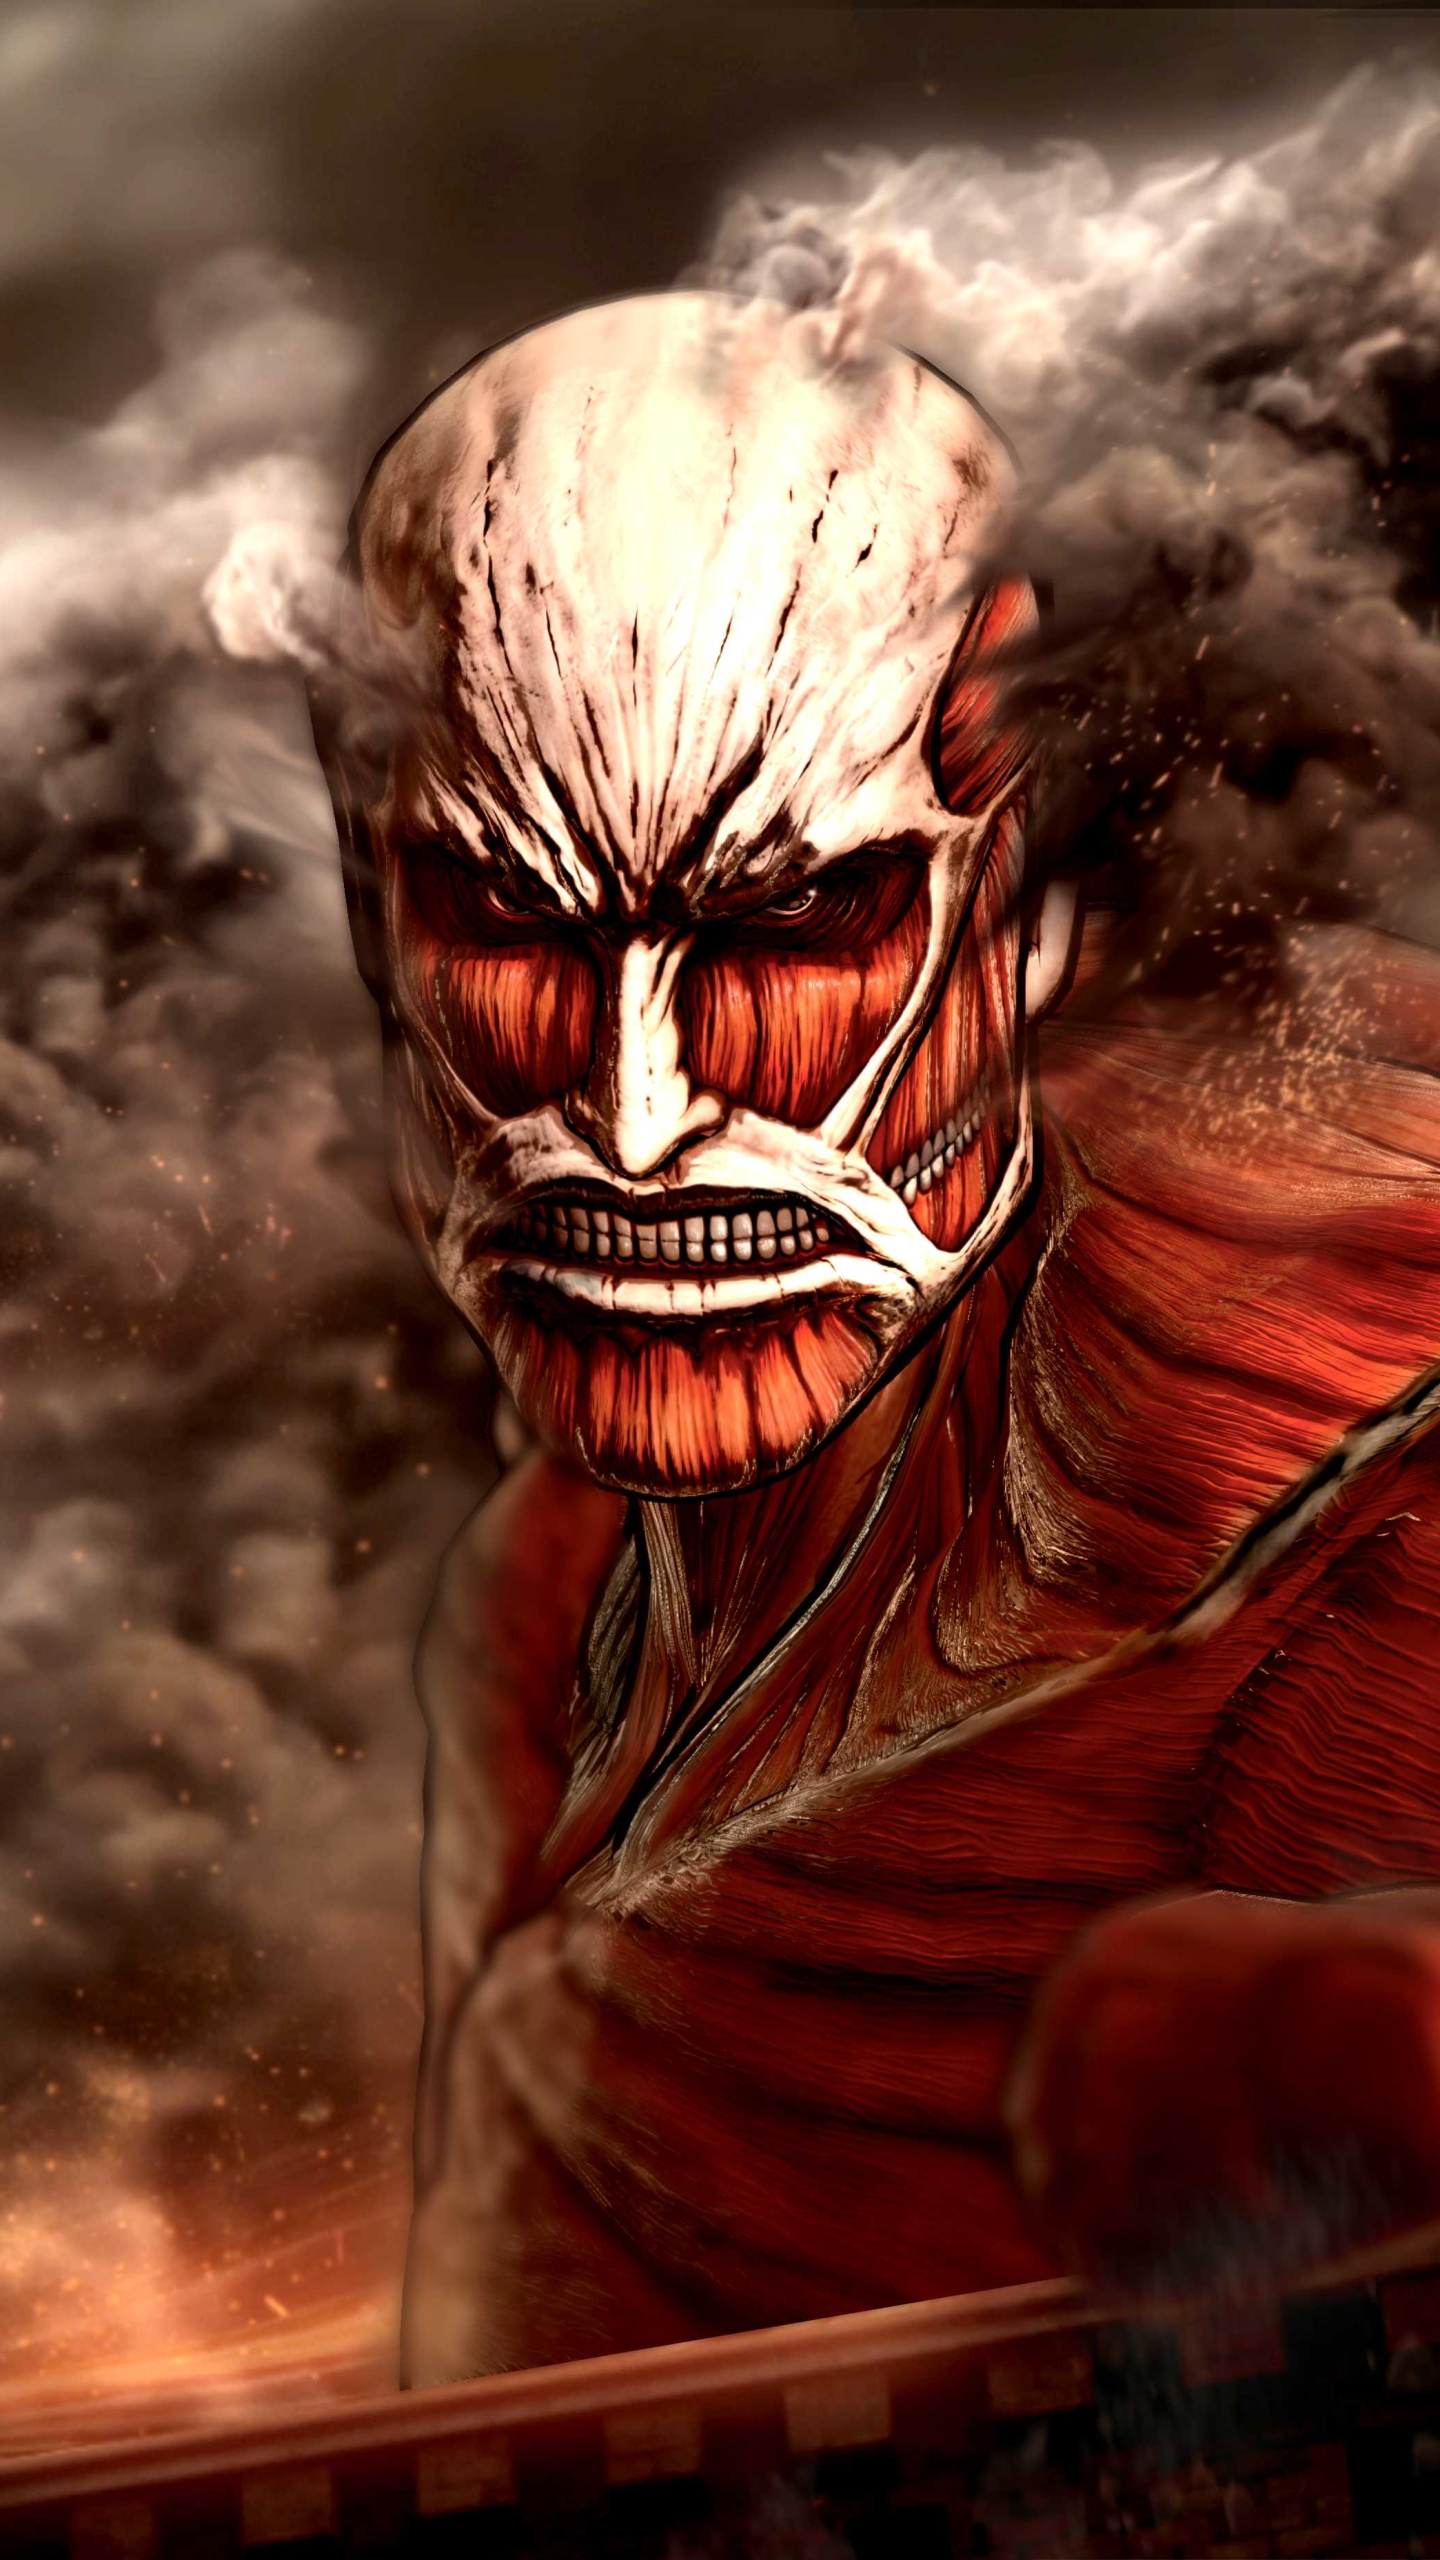 Attack On Titan Colossal Titan Wallpaper | www.pixshark ...